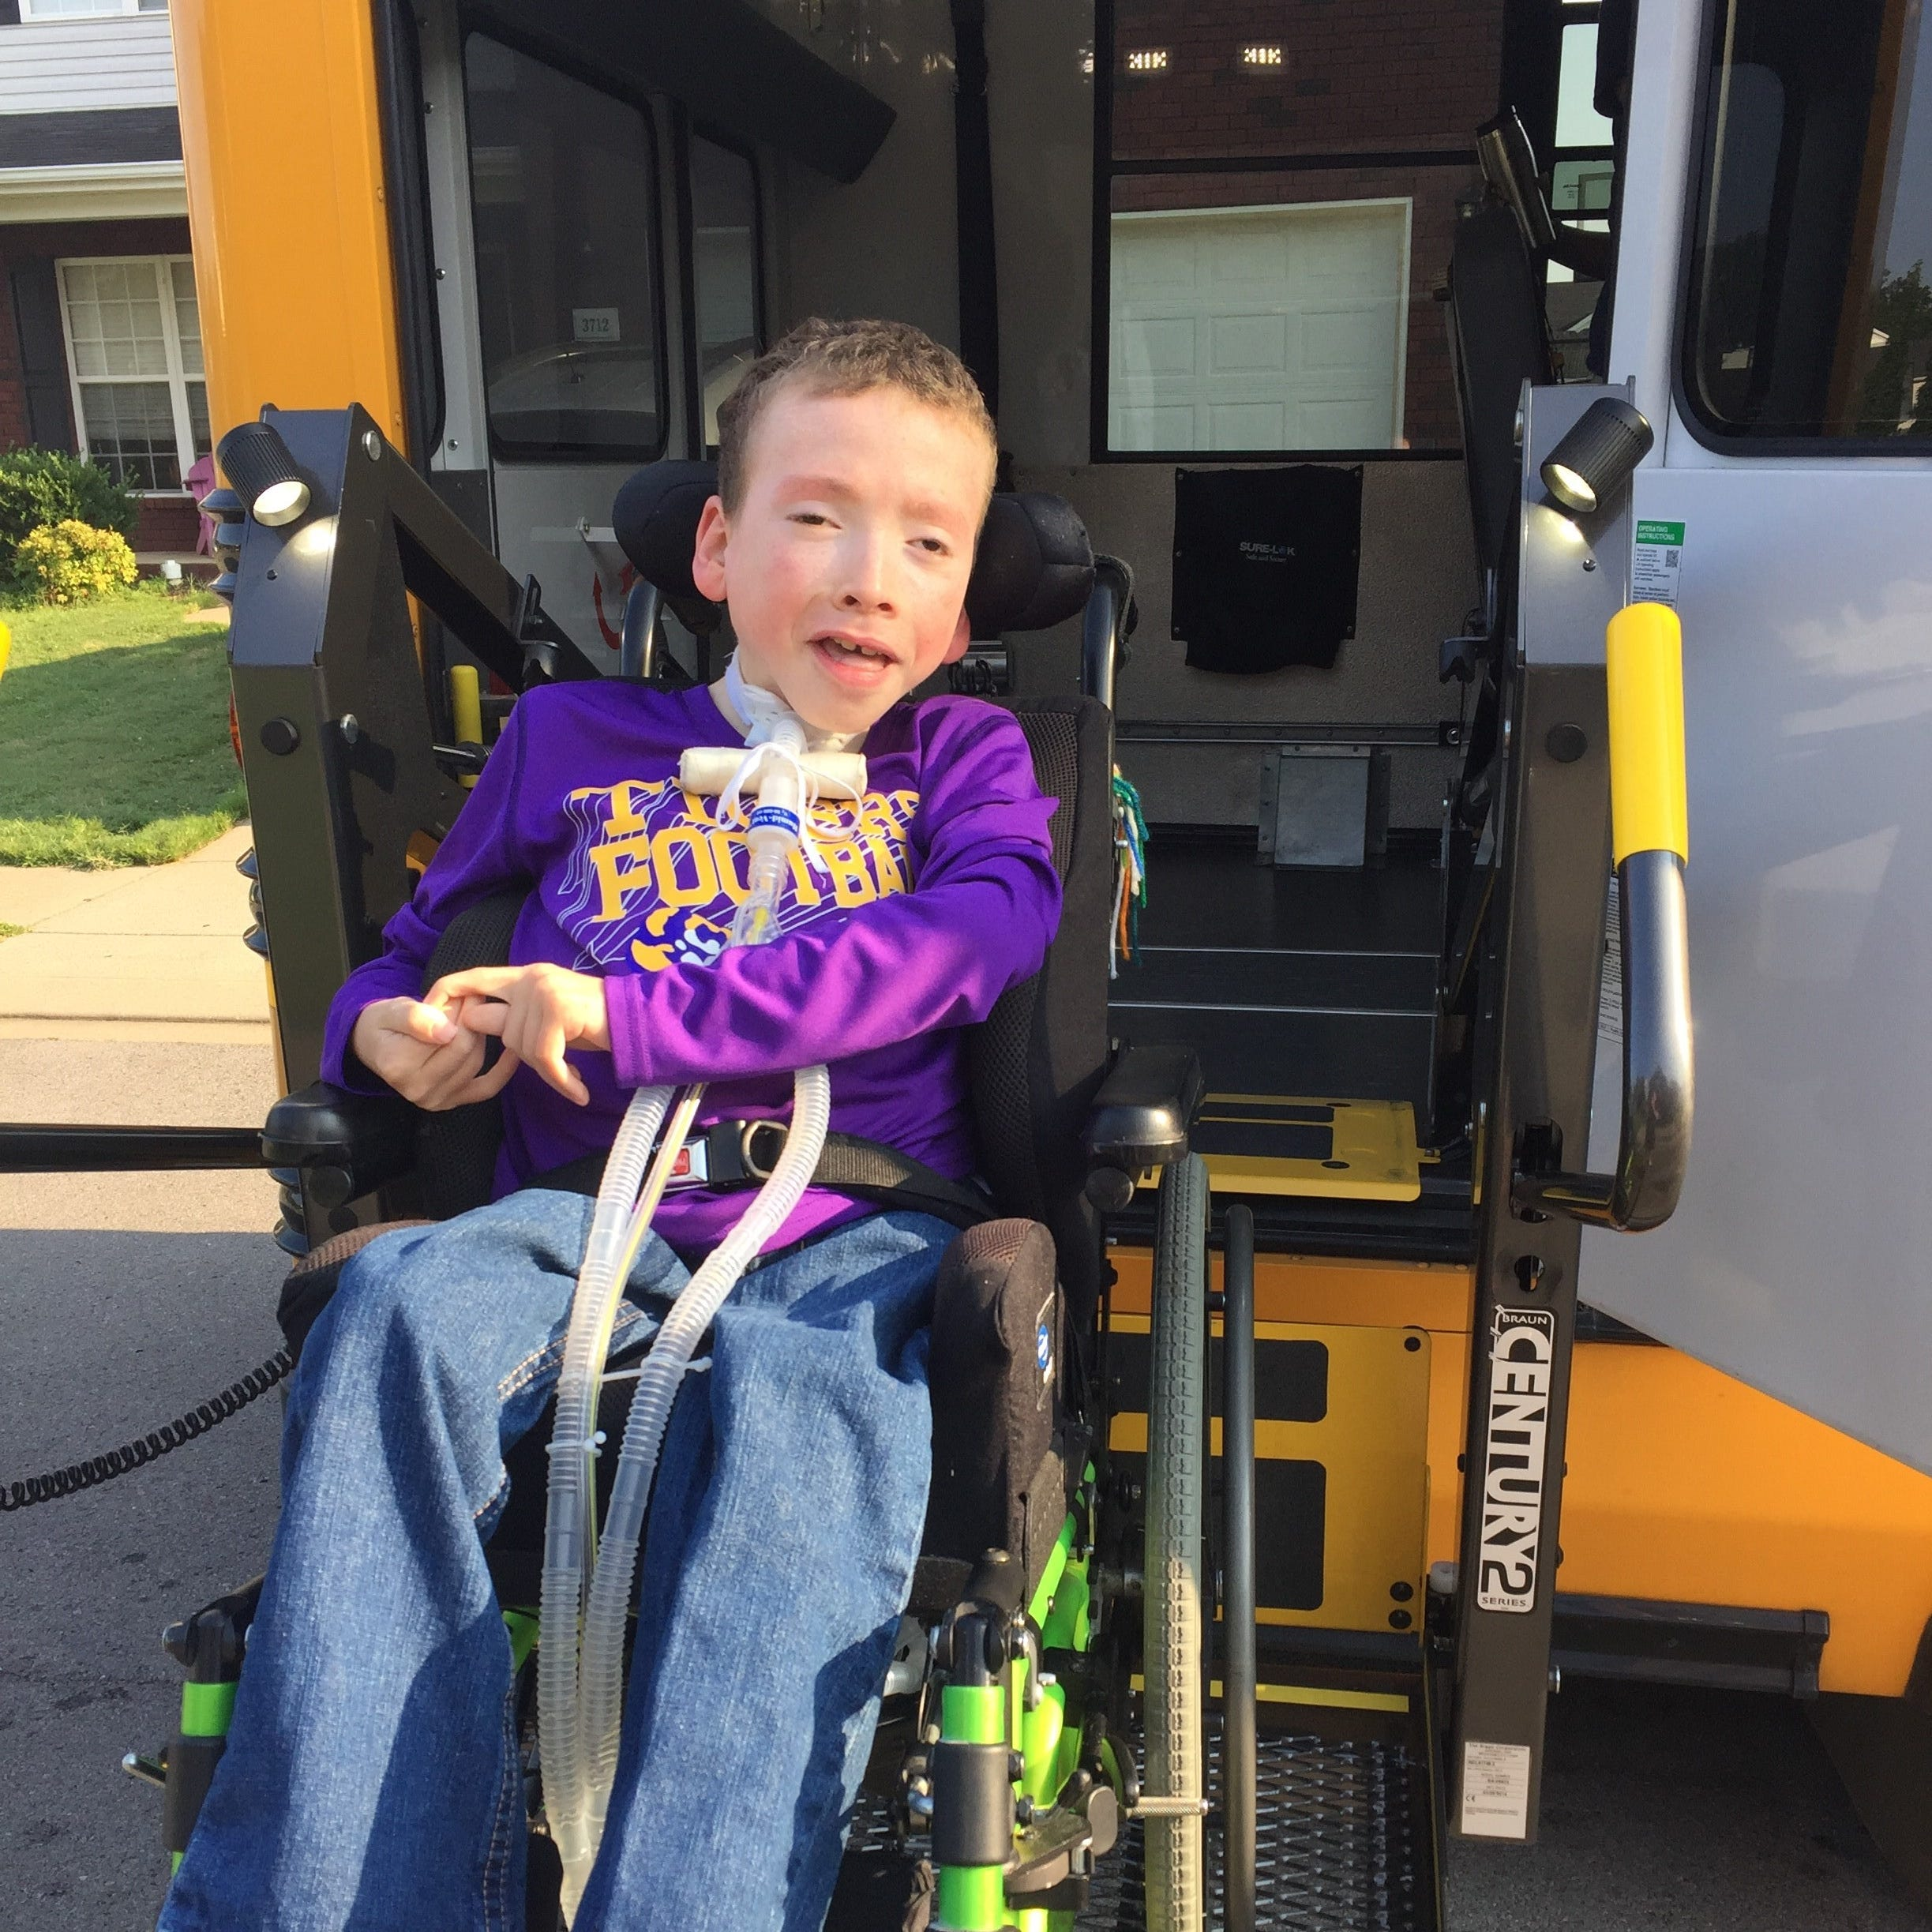 'The life he was dealt:' TennCare bill for kids with severe disabilities now behind the budget